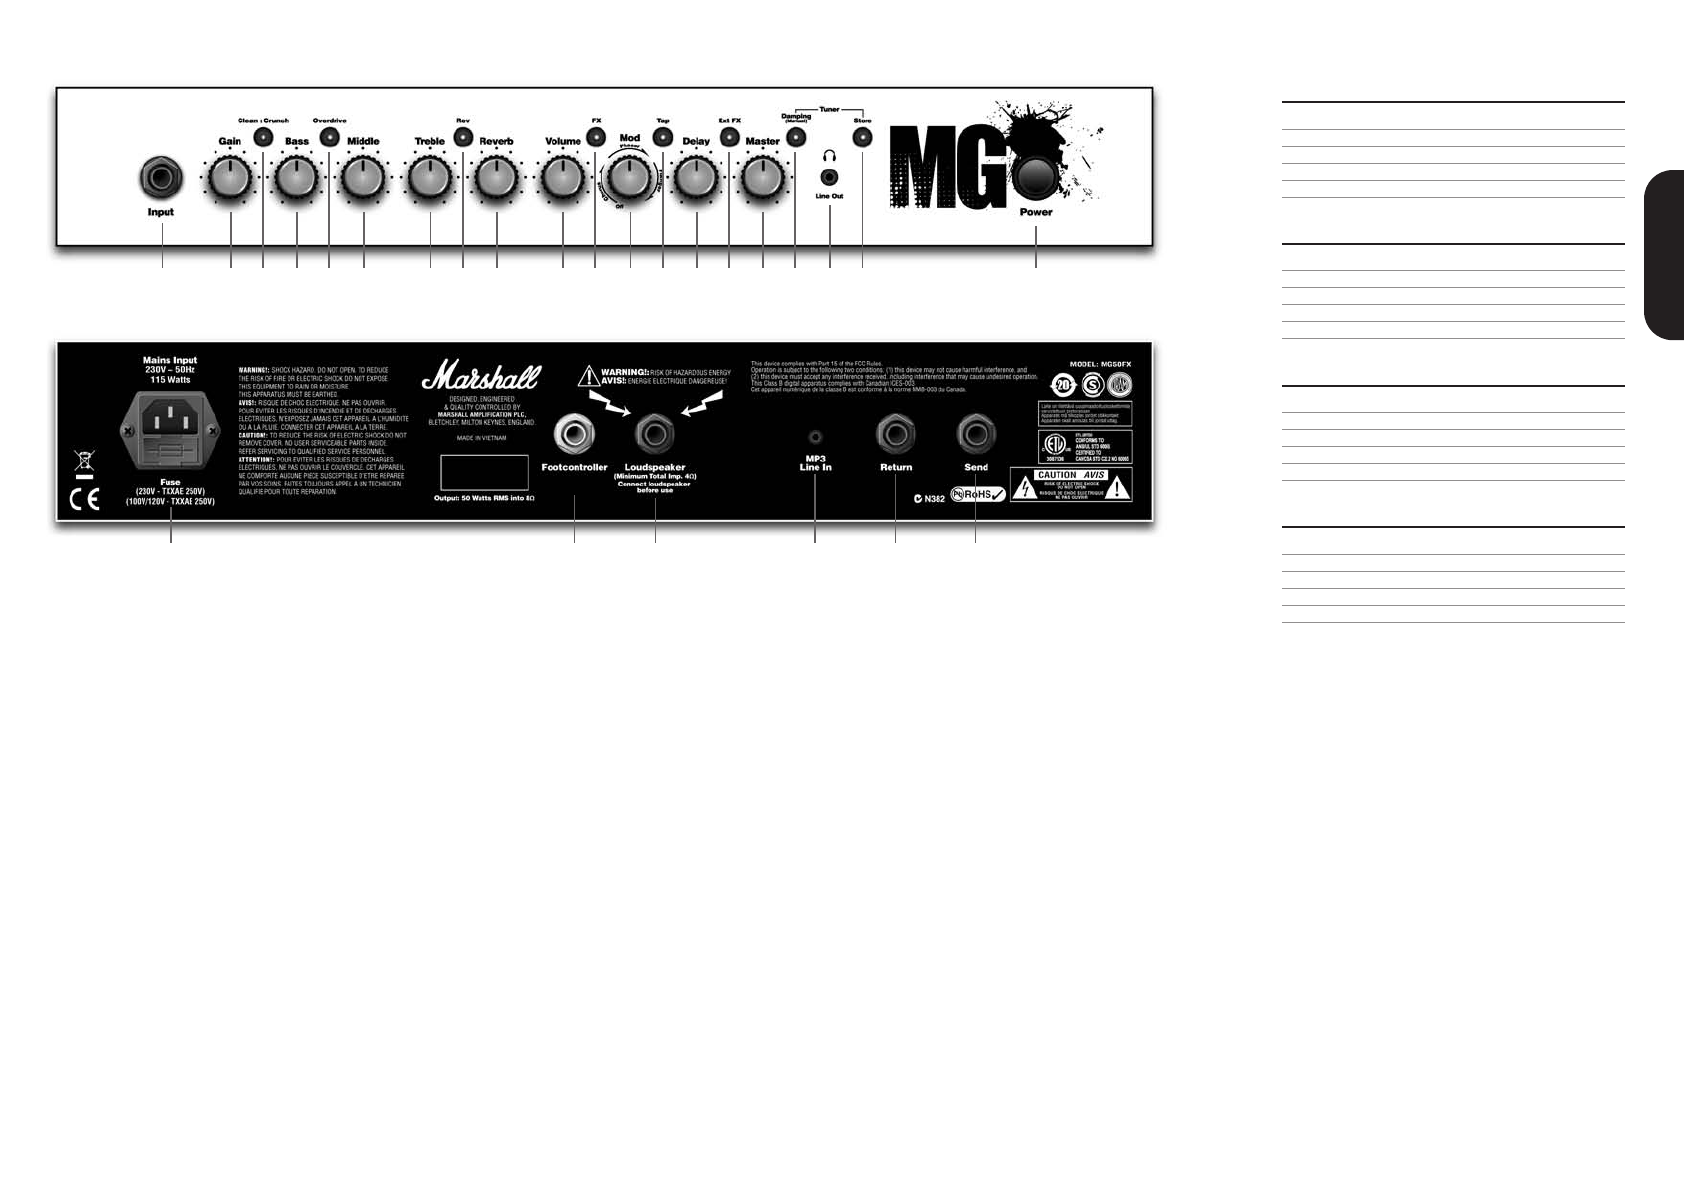 marshall plomb 100 mosfet youtube downloader